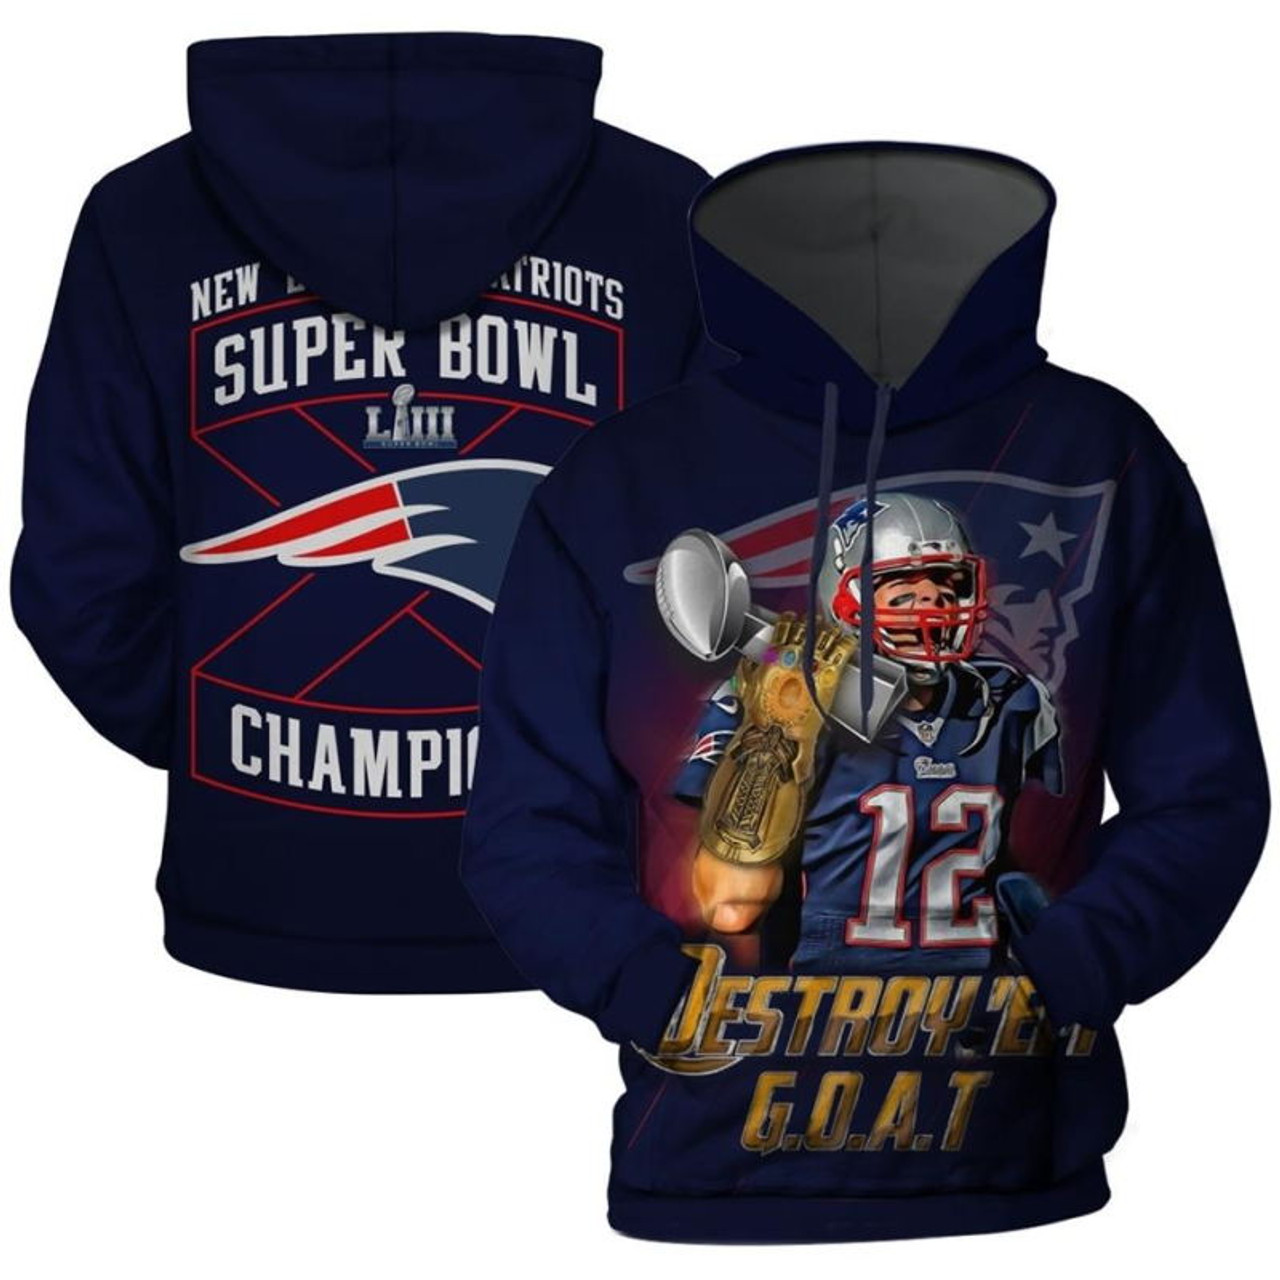 96ca72c1 **(OFFICIALLY-LICENSED-N.F.L.NEW-ENGLAND-PATRIOTS-SUPER-BOWL-CHAMPIONS-LIII  &  TOM-BRADY-NO.12-DESTROY-'EM-G.O.A.T/NICE-CUSTOM-3D-GRAPHIC-DOUBLE-SIDED-...